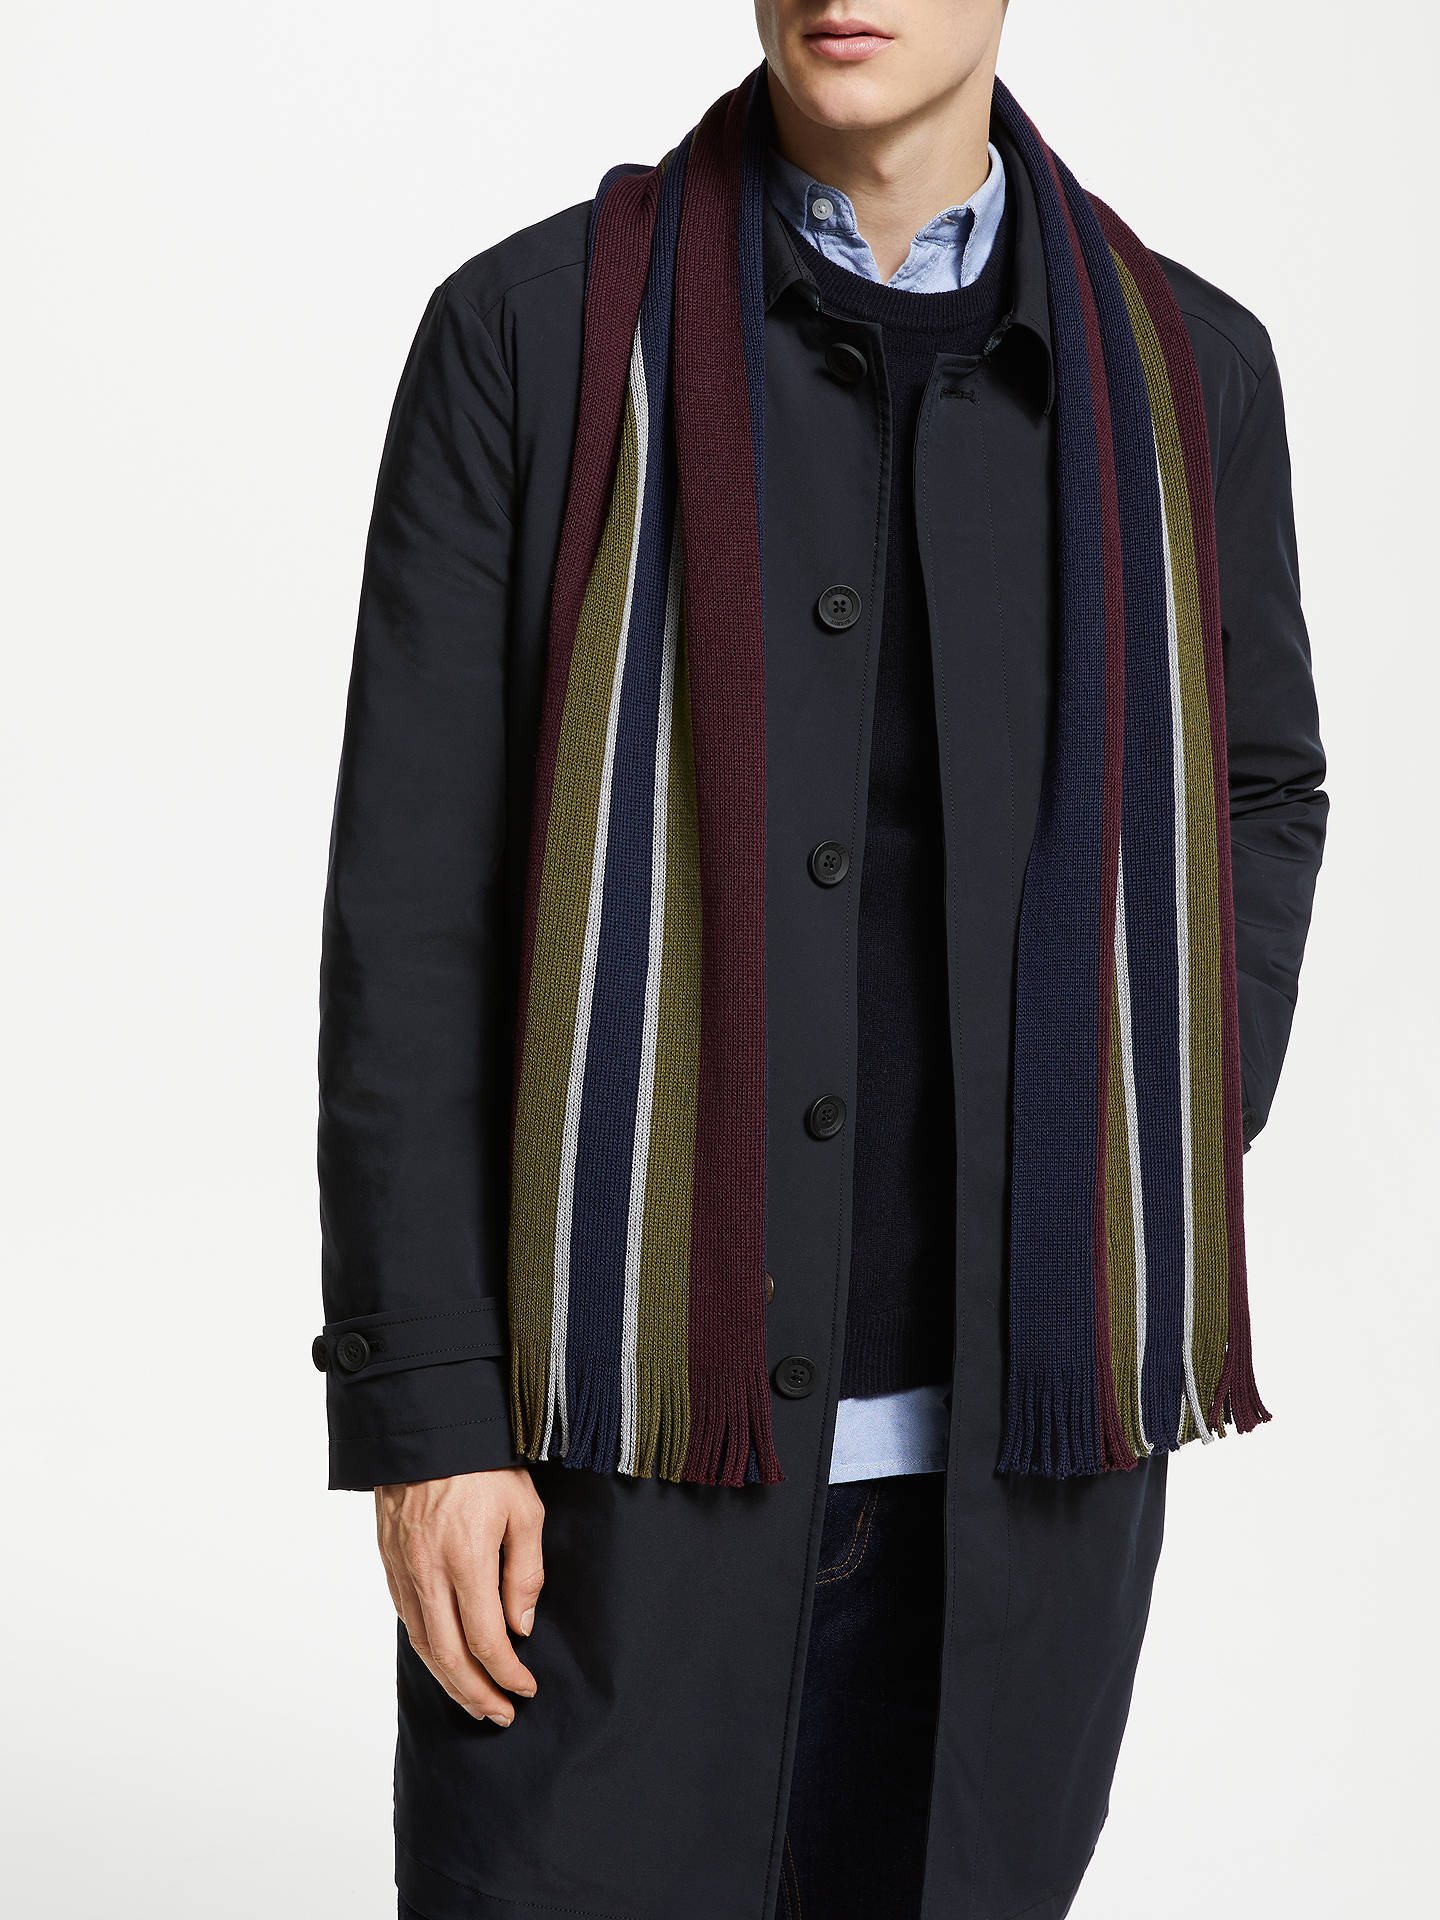 cc98c9787d6f Offer  Ted Baker Striped Scarf at John Lewis   Partners